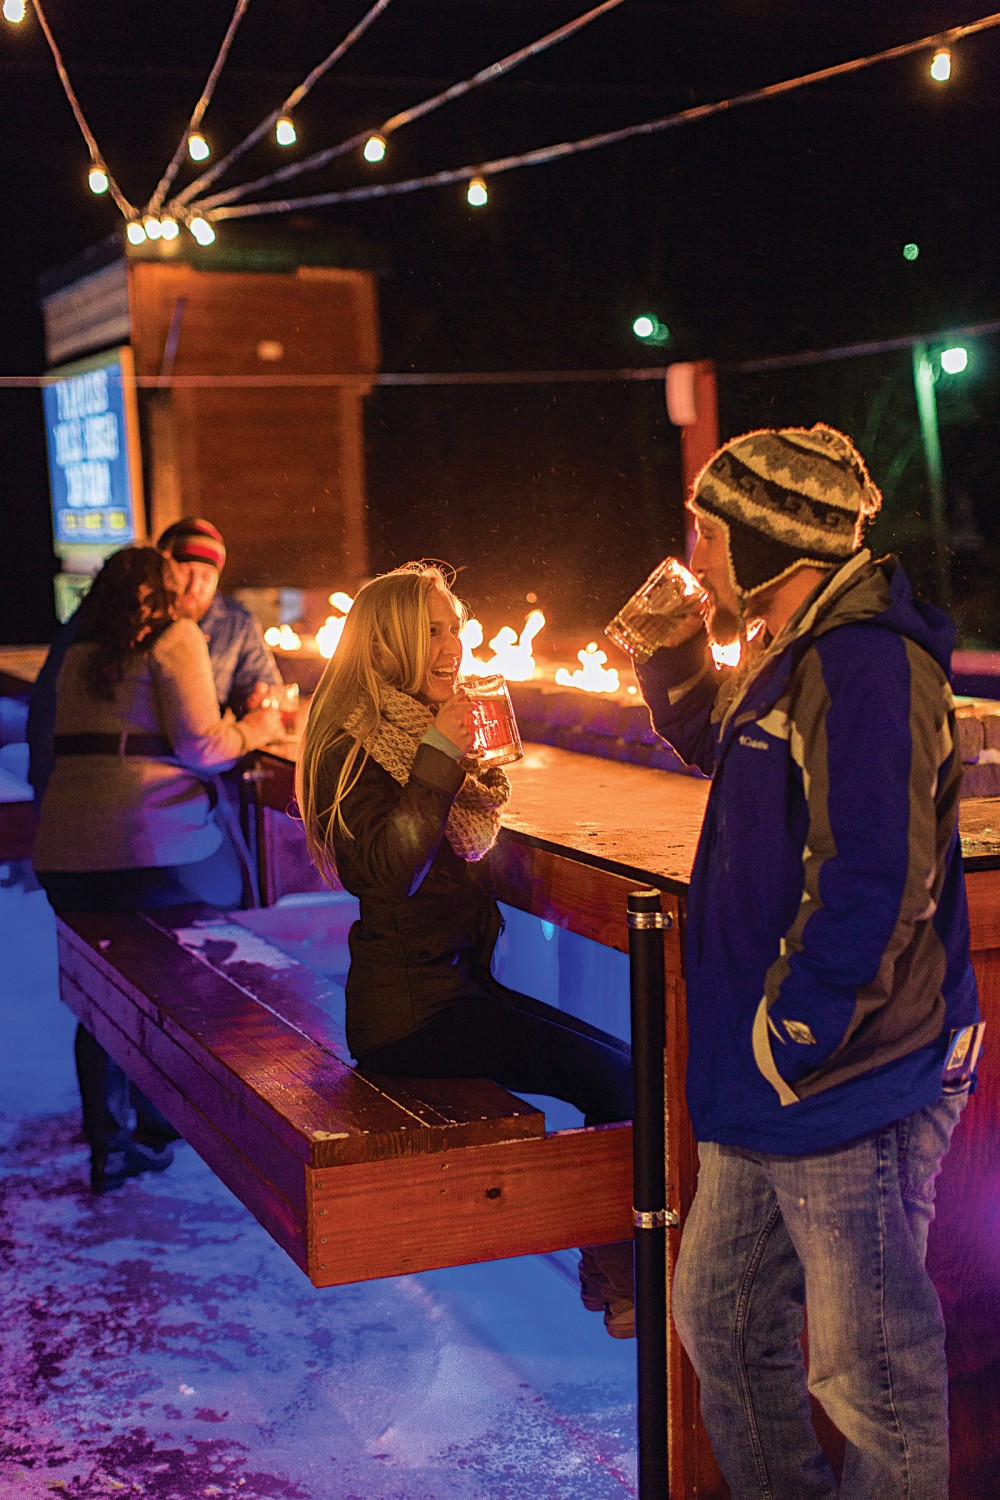 Craft-beer-at-Mile-High-Tavern,-Beech-Mtn_FIX